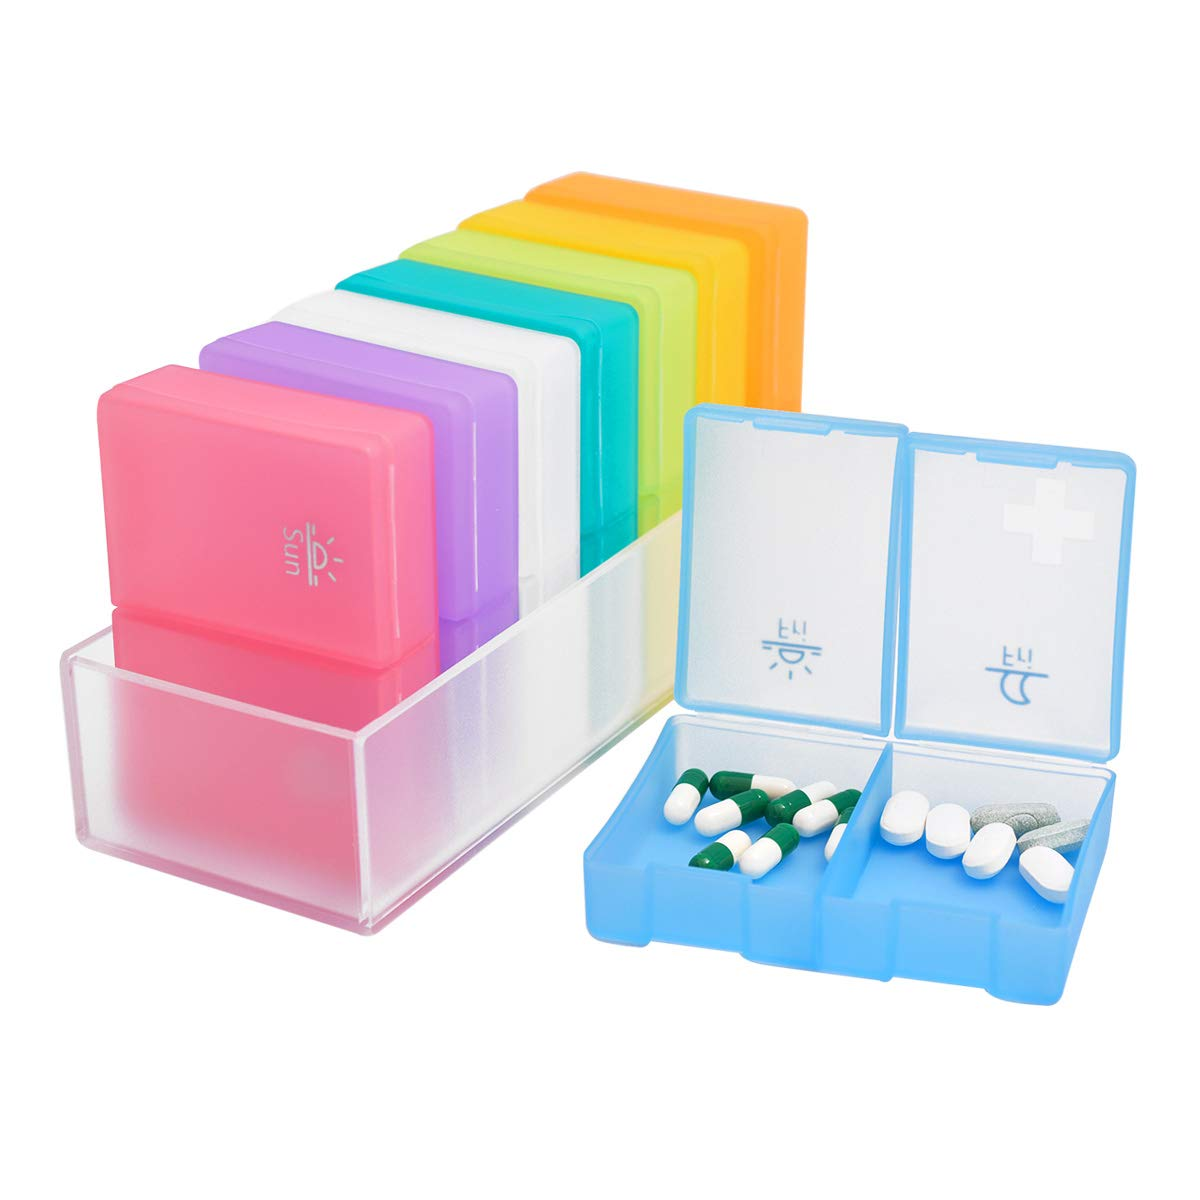 Large Pill Organizer, 7 Day Weekly Pill Box (2 Times a Day) BPA Free Travel Case to Hold Vitamins,Pills,Fish Oil, Supplements and Medication by Hiquaty